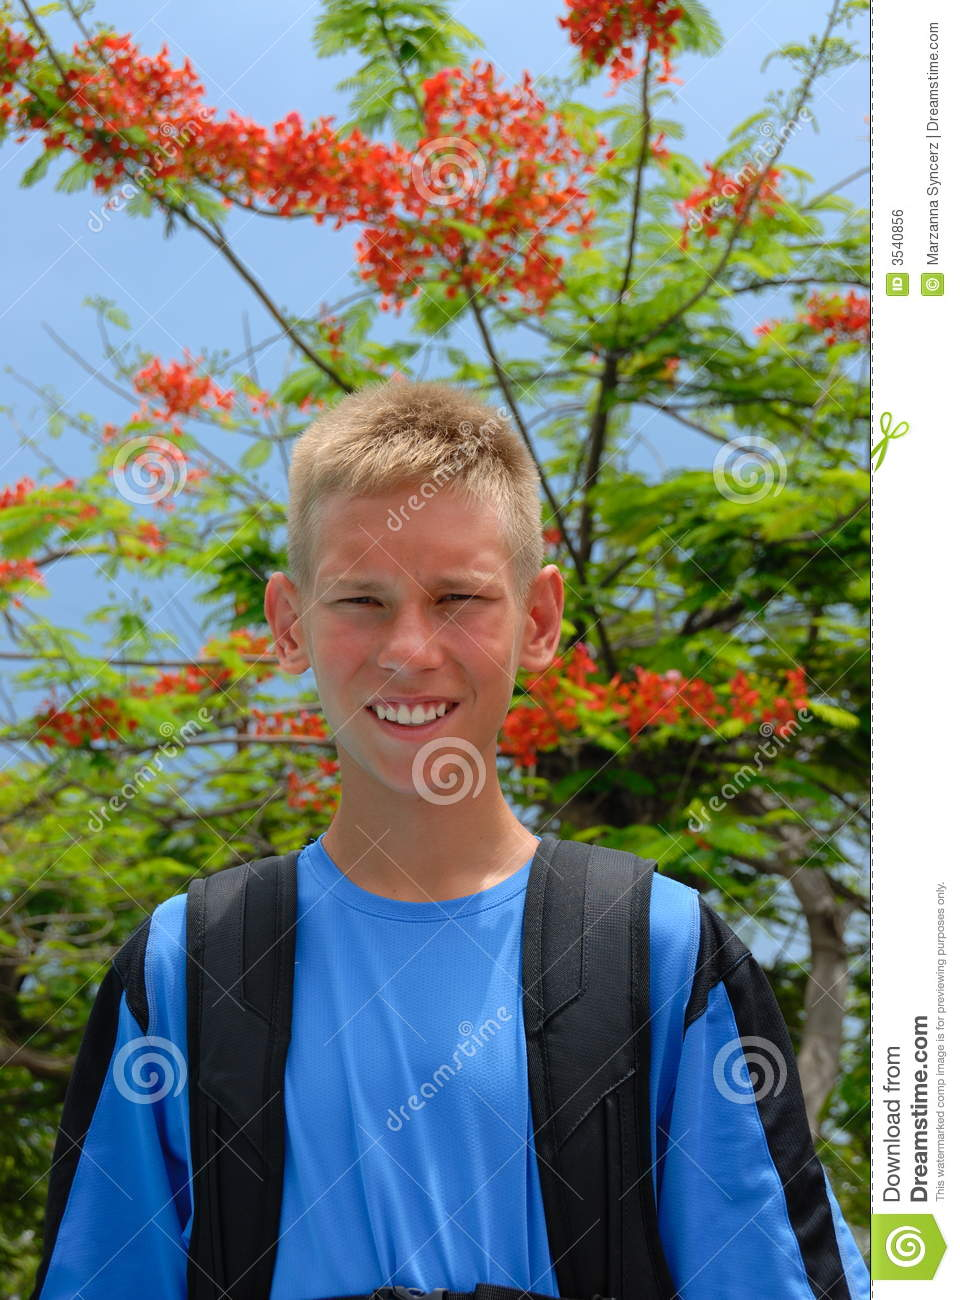 Happy Teen By Crumbling Wall Stock Image: Happy Teen Boy In Park Royalty Free Stock Image